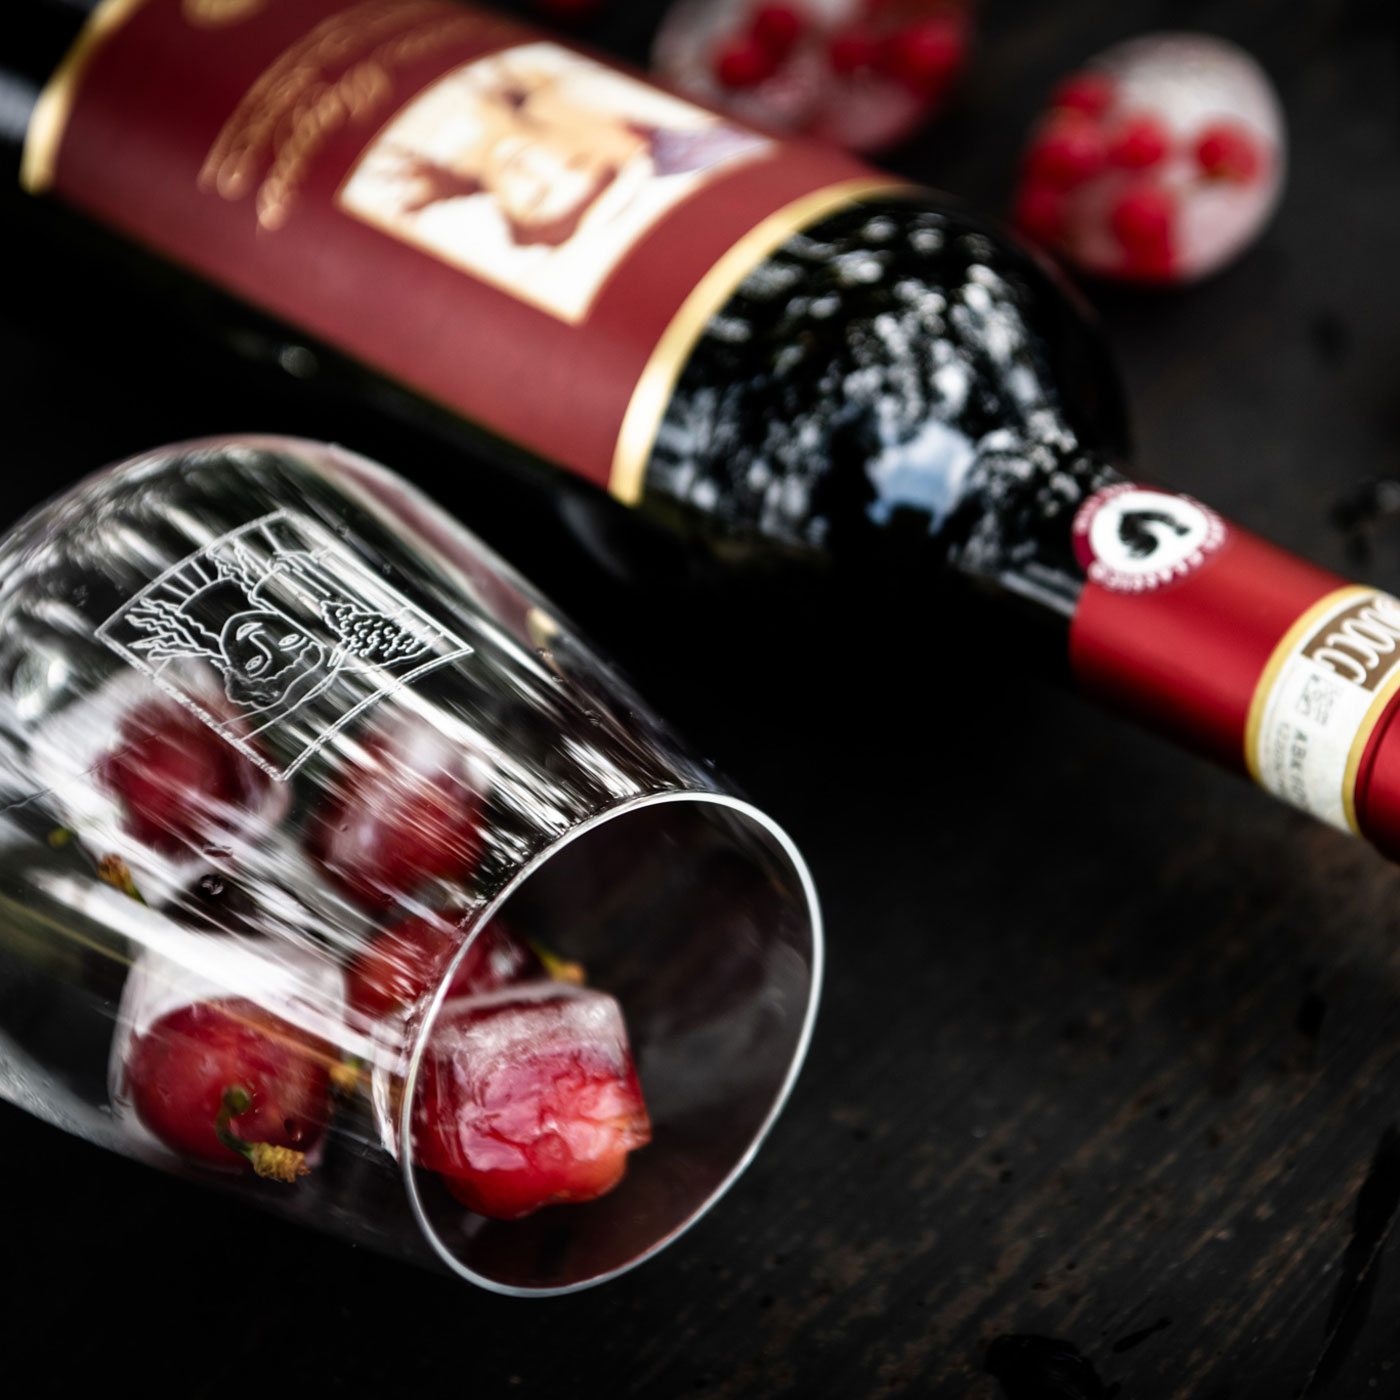 Enjoy the Chianti Classico organic red wine buy buying online or wine tasting